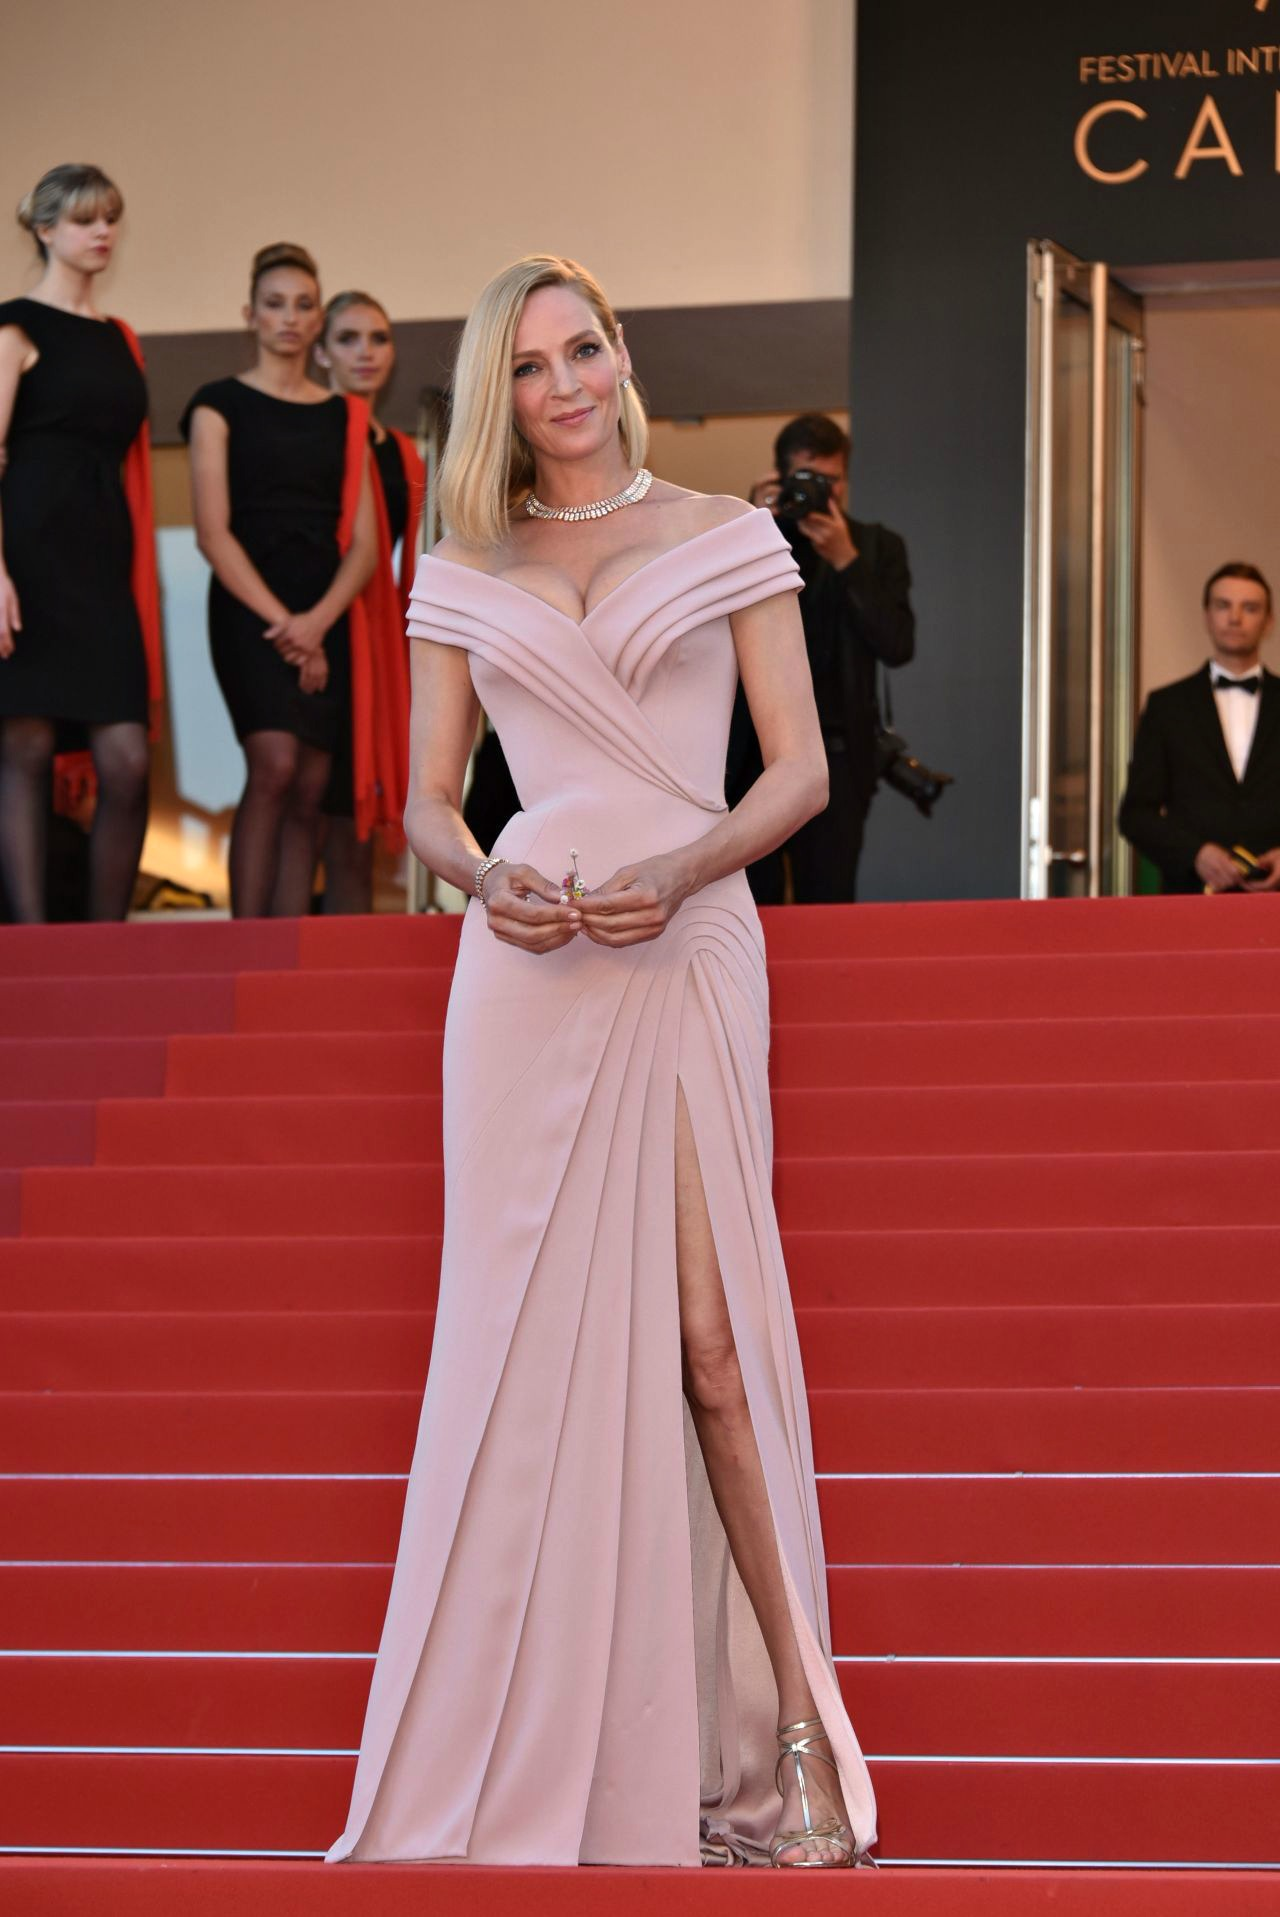 20 Best Cannes 2017 Red Carpet Looks - Uma Thurman in Atelier Versace